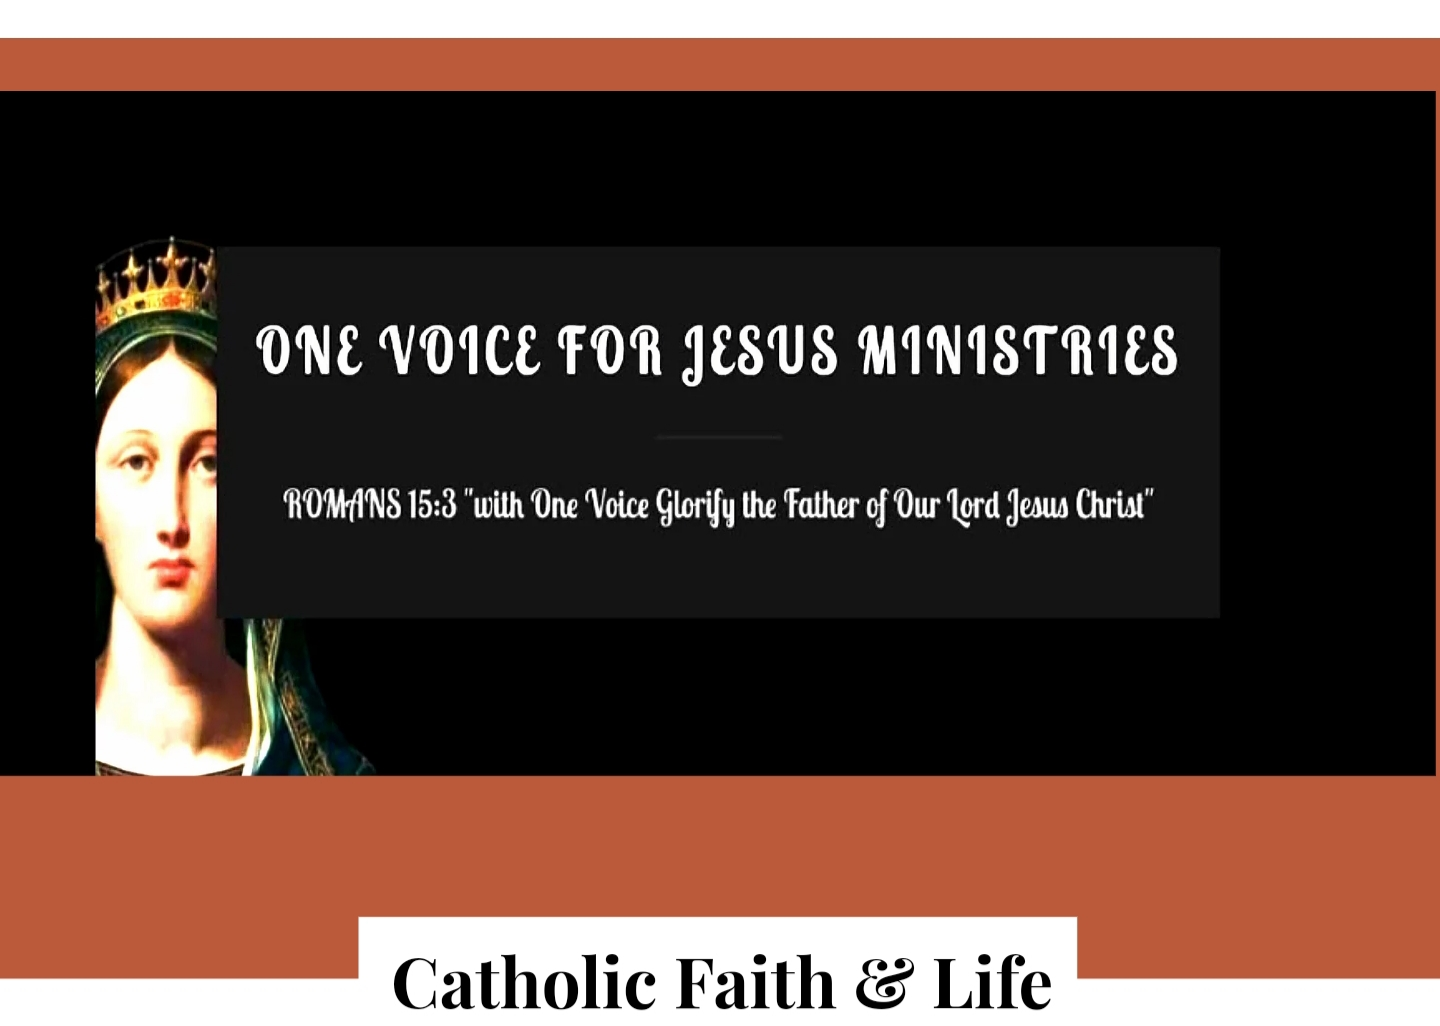 One Voice for Jesus Ministries